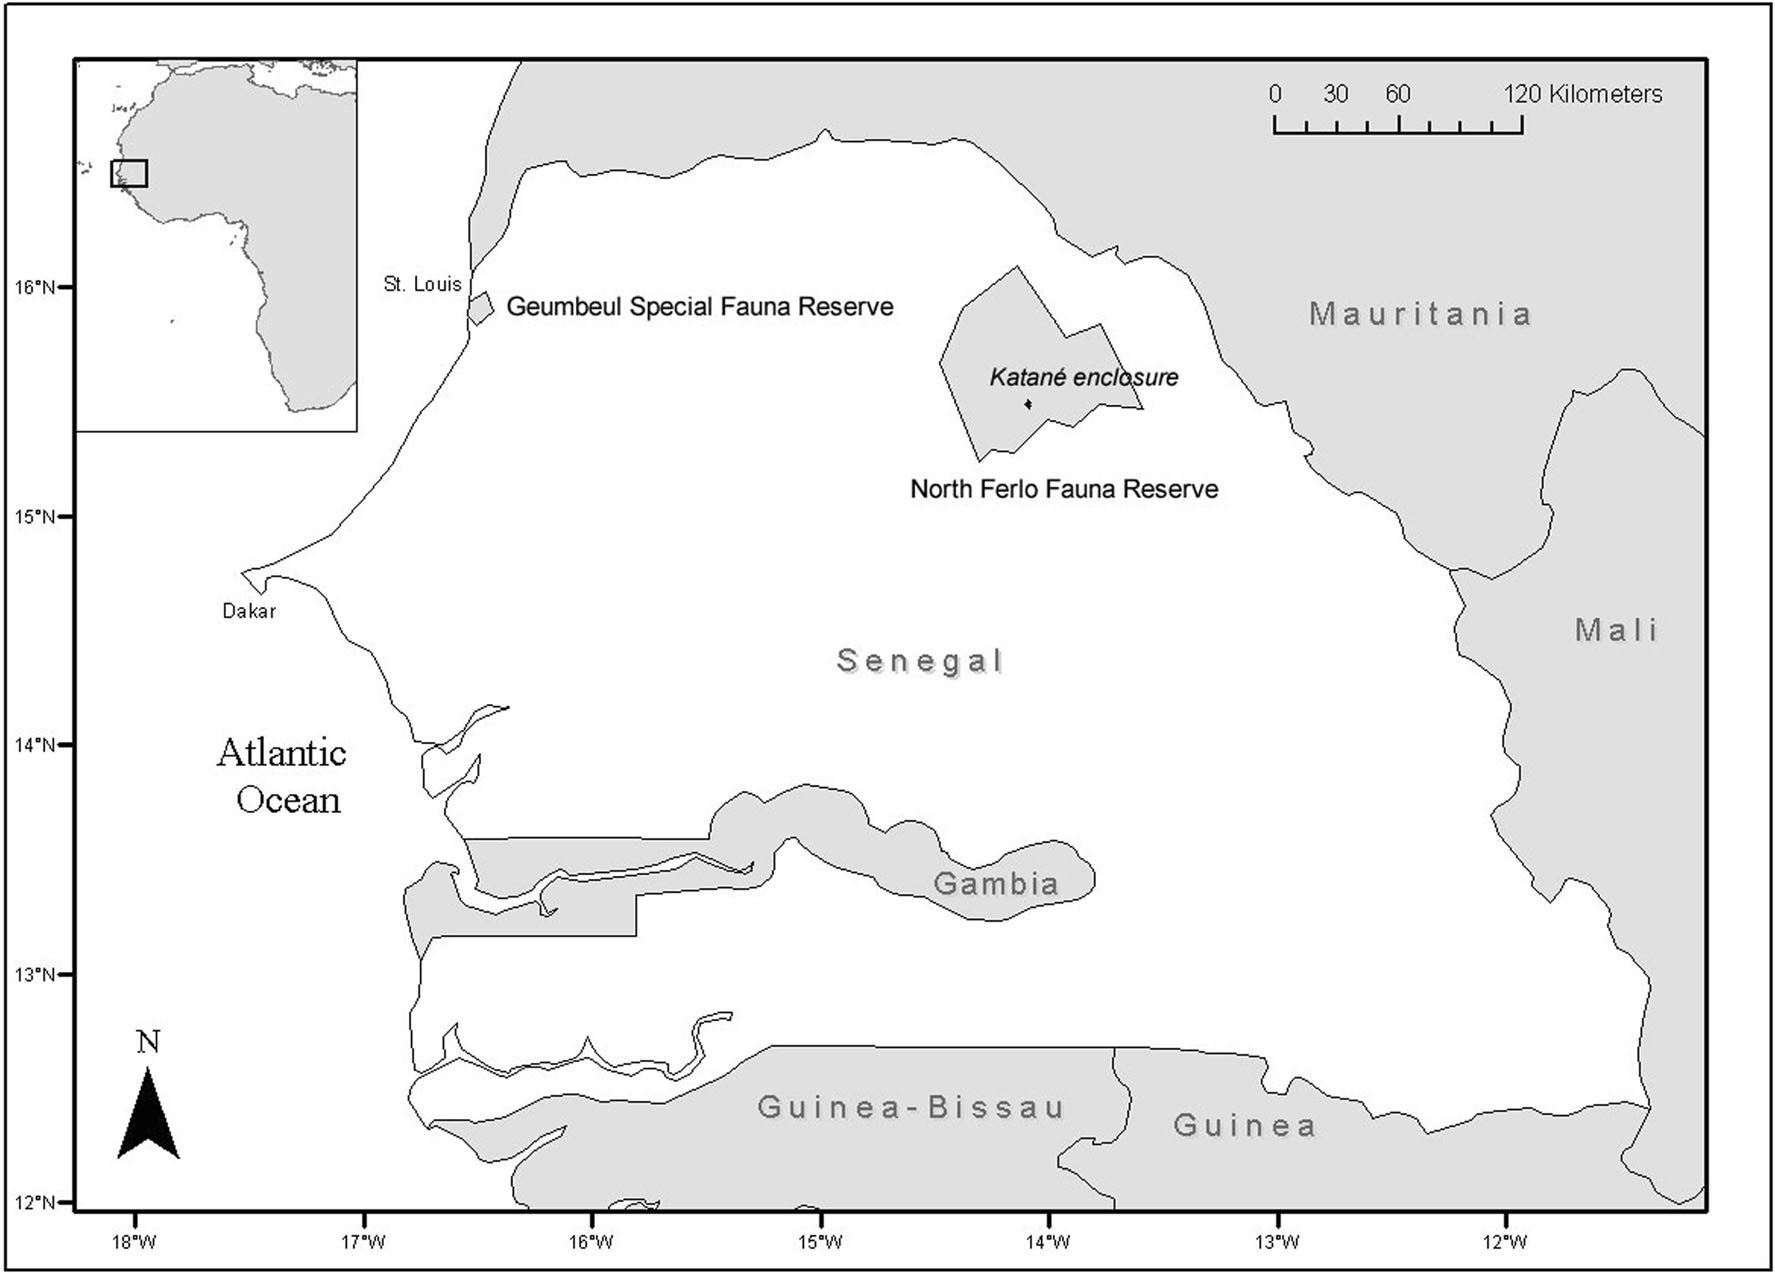 Map of the Katané enclosure (North Ferlo Fauna Reserve, Senegal)e, the area of reintroduction and study (credits Estación Experimental de Zonas Aridas/CSIC)